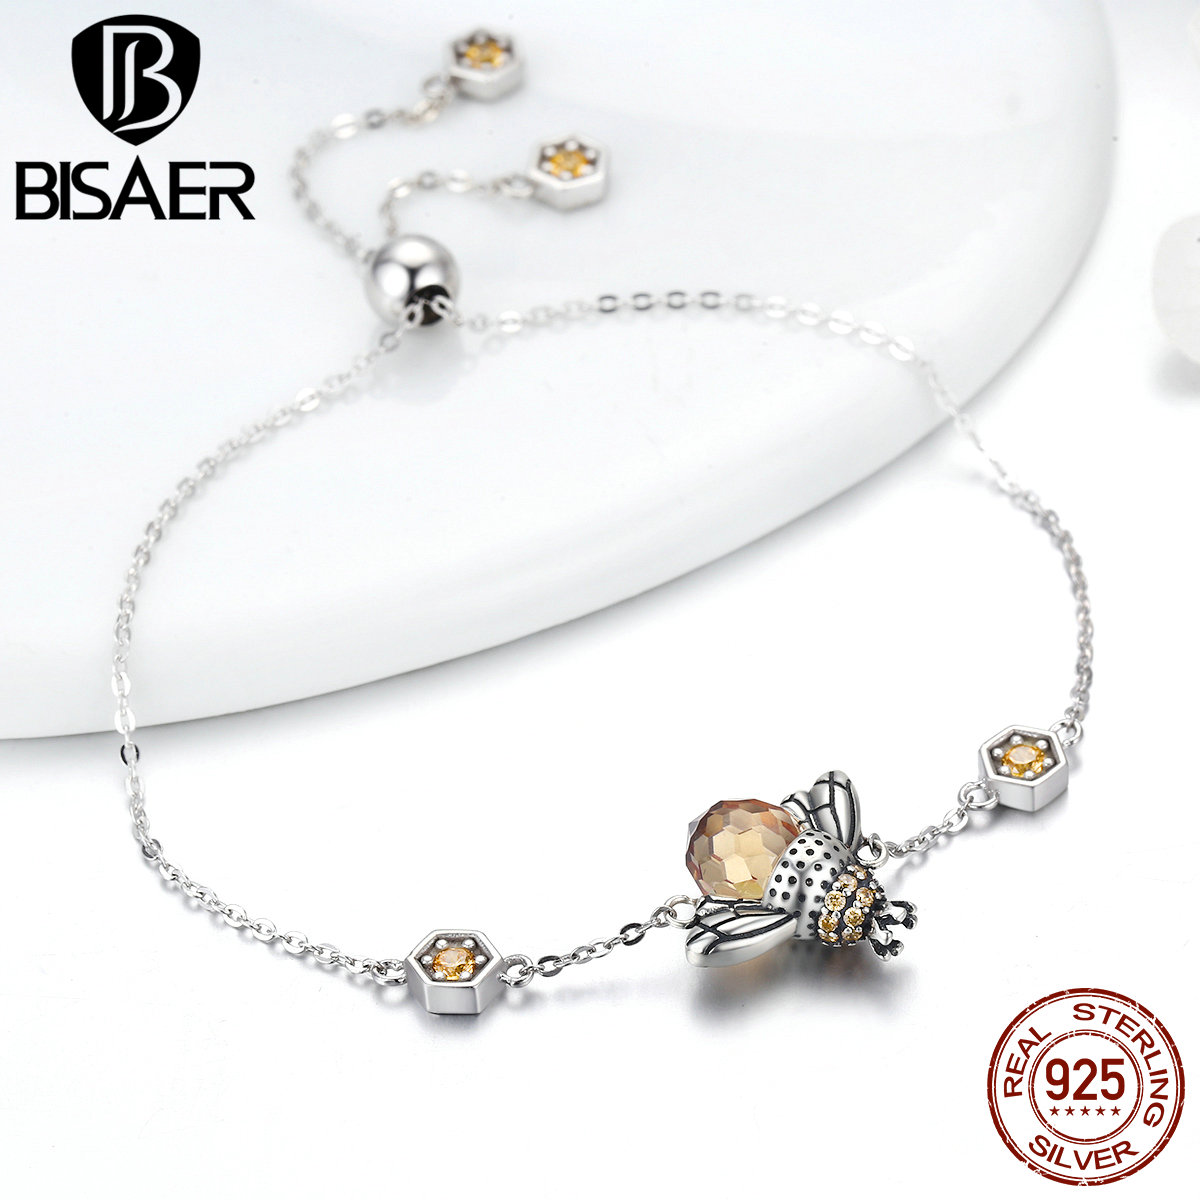 2018 Spring Collections 100% 925 Sterling Silver Dancing Bees Cute Insect Chain Bracelet for Women Fine Jewelry Gift